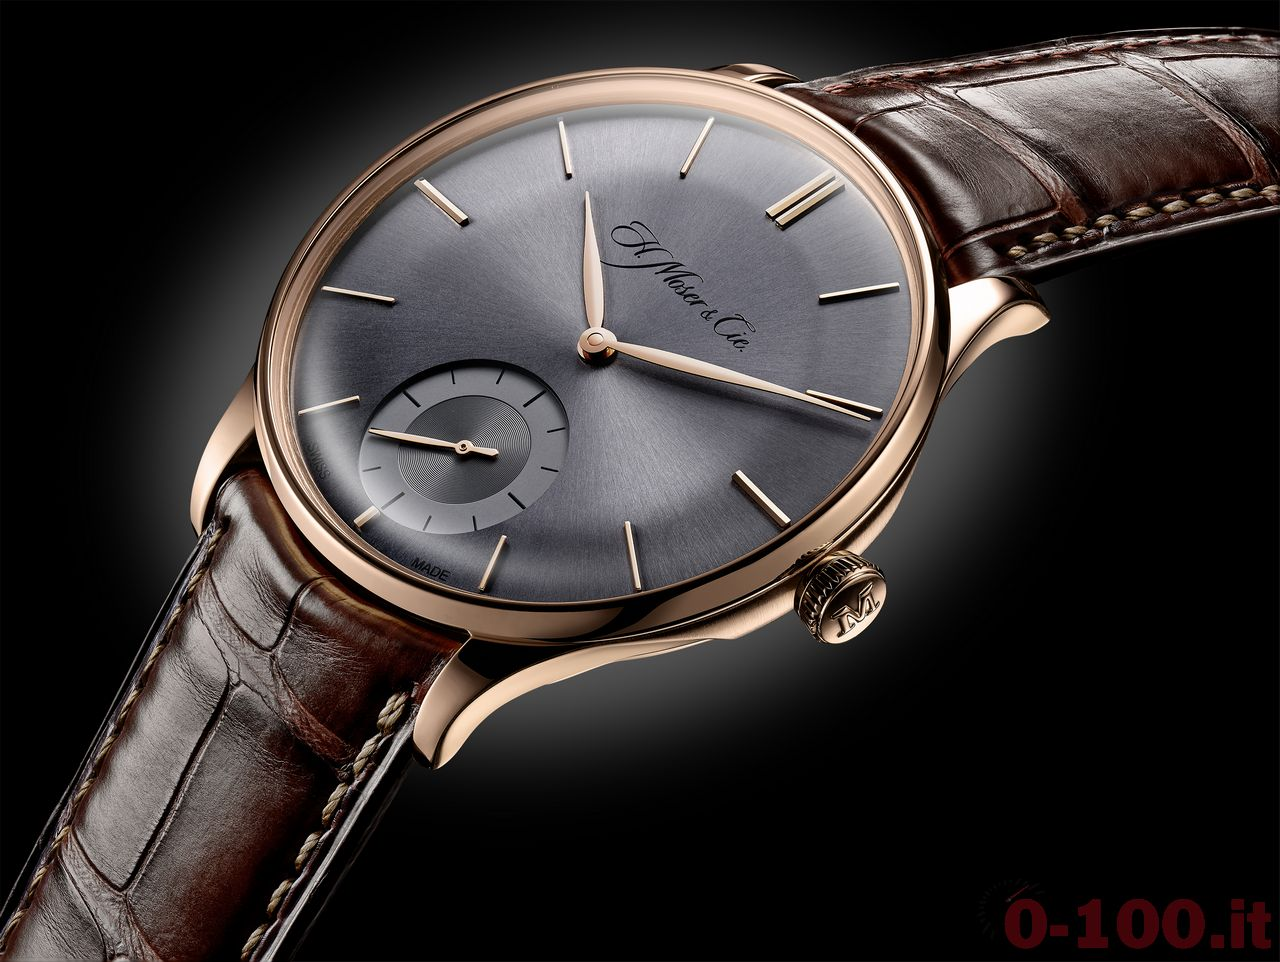 Baselworld-2014-H. Moser & Cie Venturer Small Seconds _0-10015